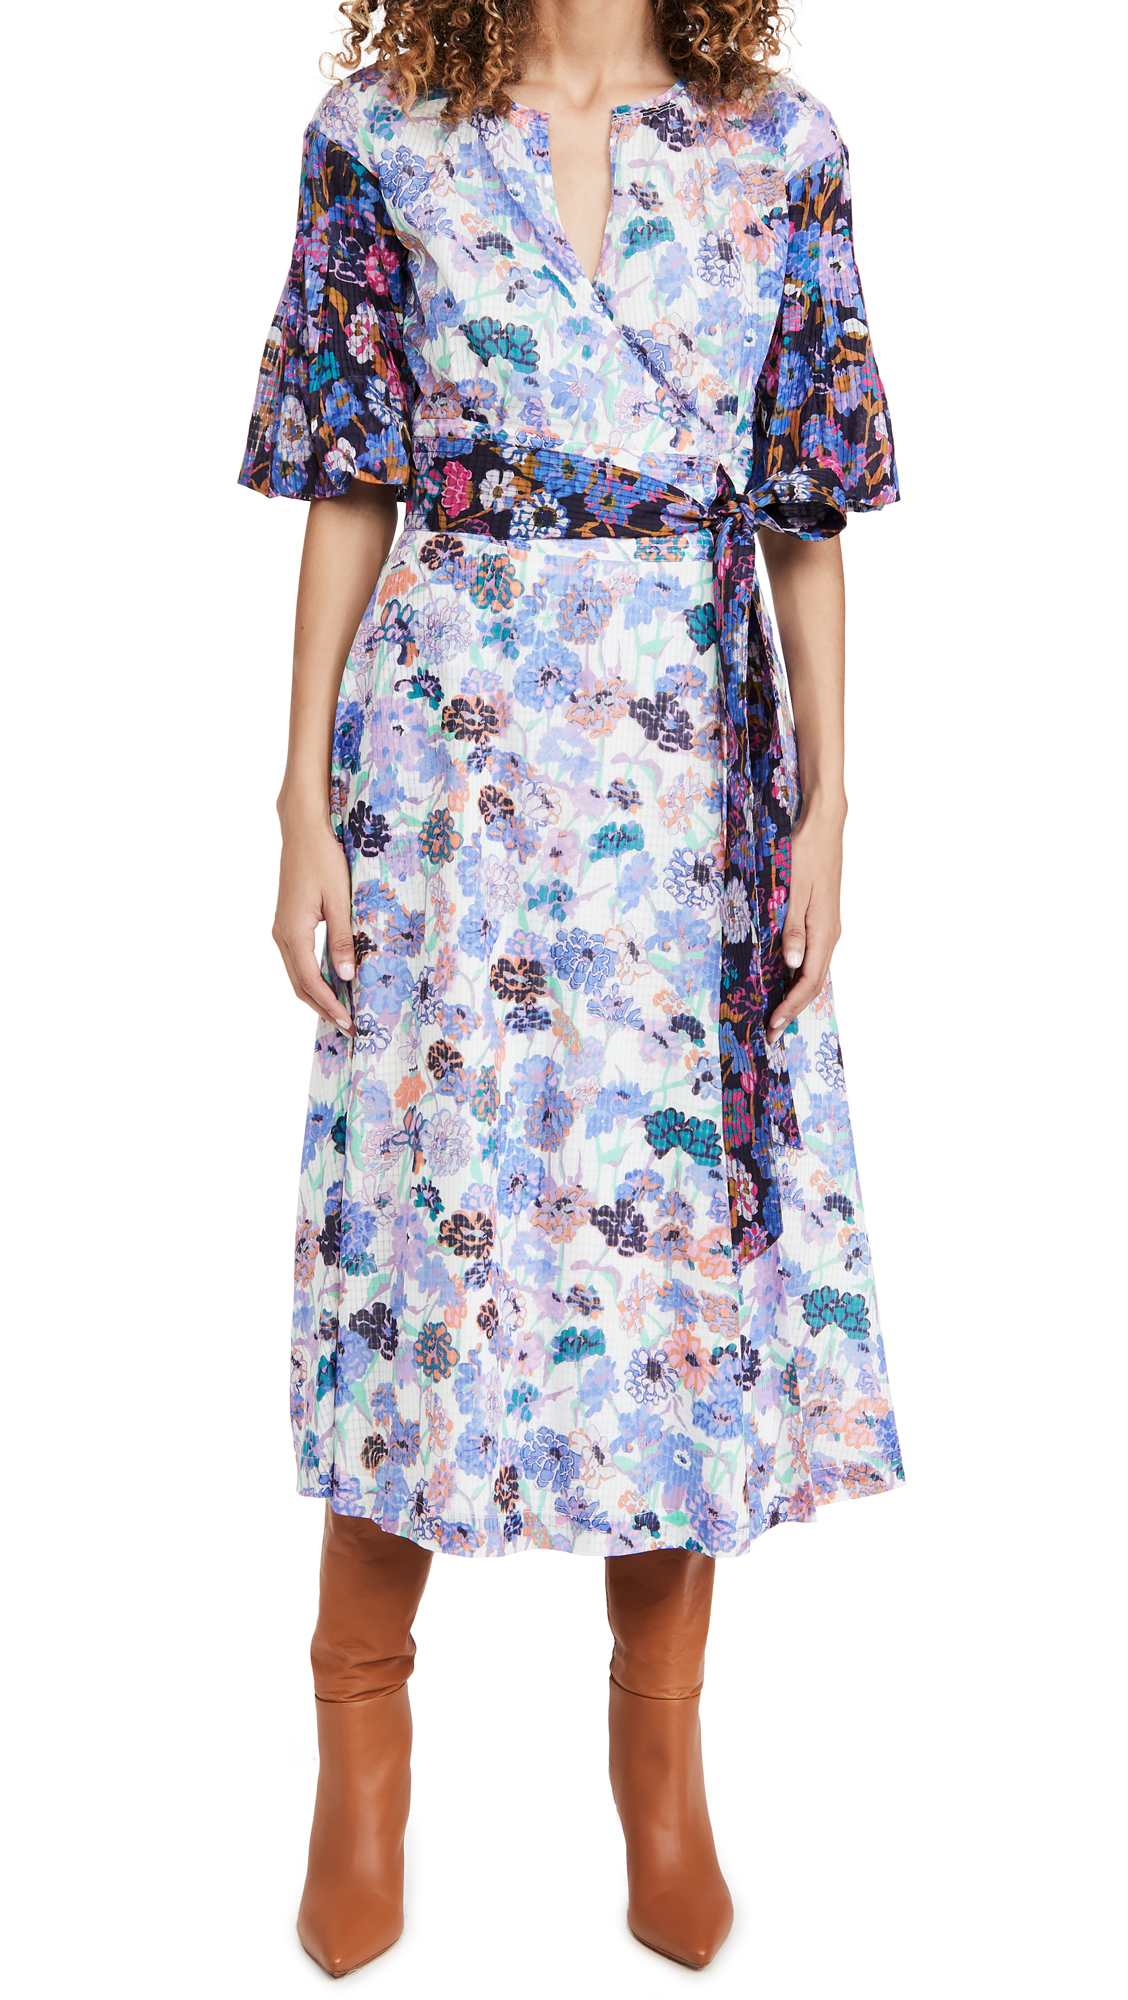 Tanya Taylor Frida Dress In Mixed Meadow Ivory/navy